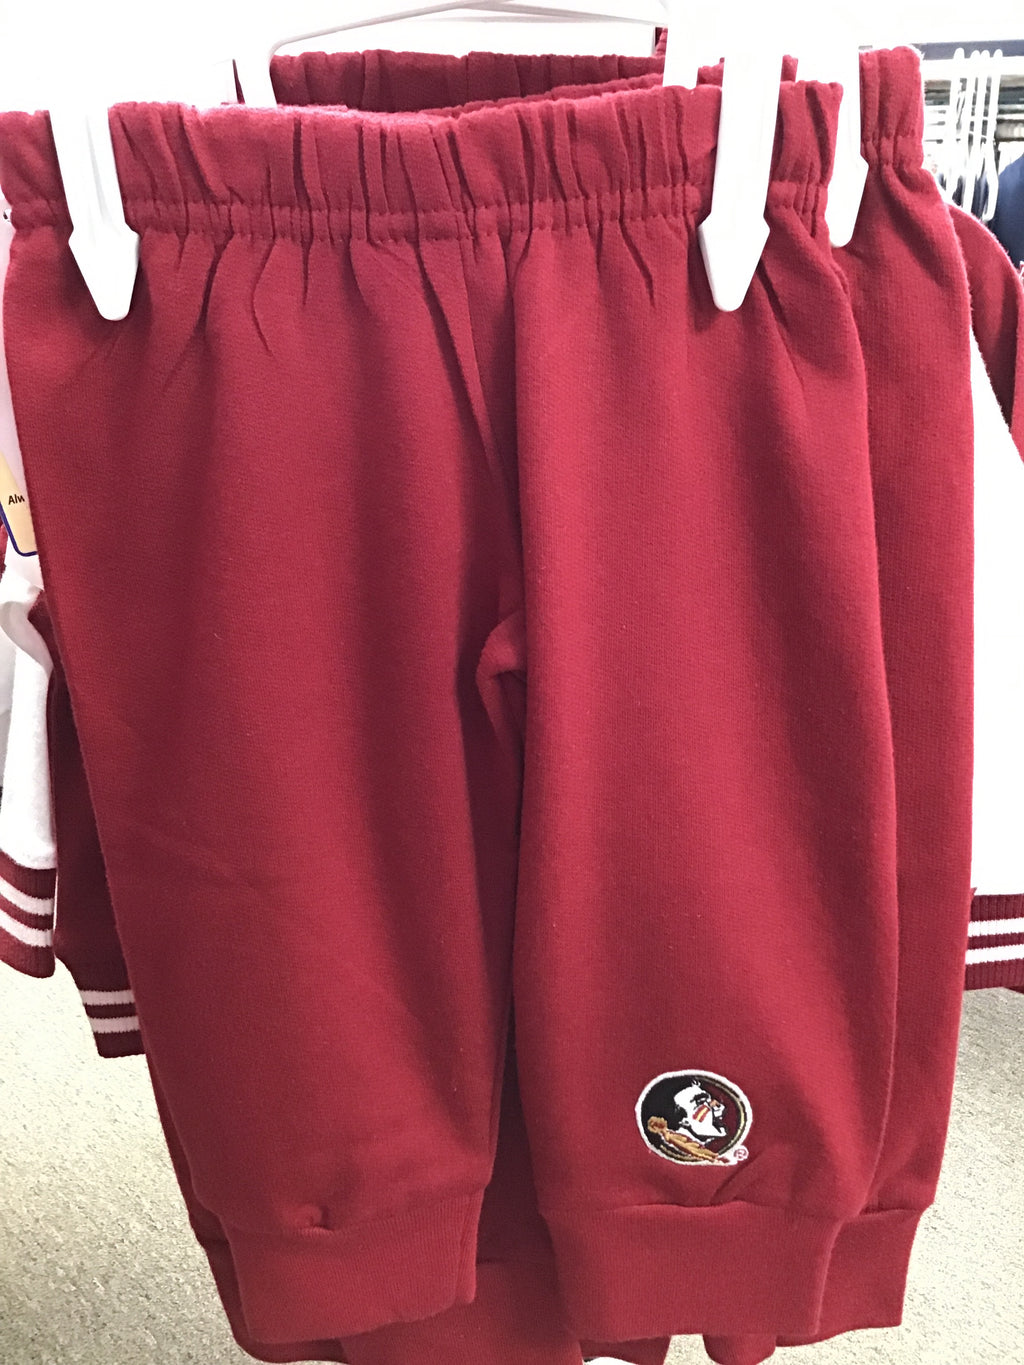 Creative Knitwear Collegiate Sweatpants